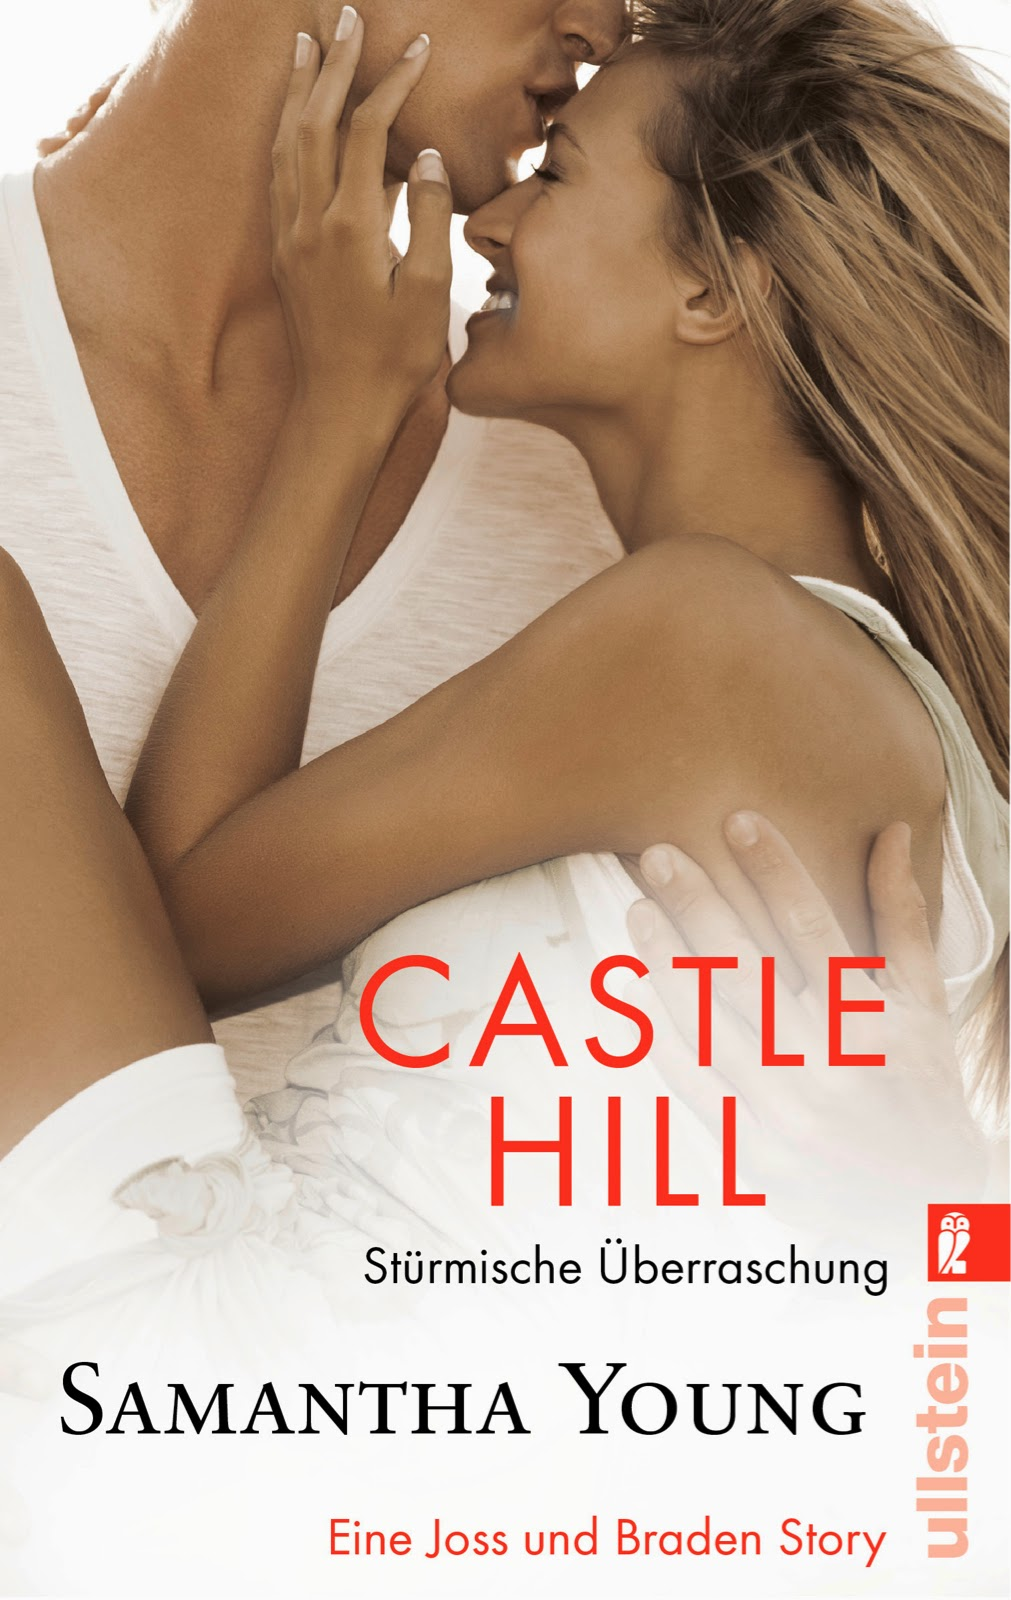 http://www.amazon.de/Castle-Hill-St%C3%BCrmische-%C3%9Cberraschung-Edinburgh-ebook/dp/B00IE9CUYI/ref=sr_1_1?s=books&ie=UTF8&qid=1399880334&sr=1-1&keywords=castel+hill